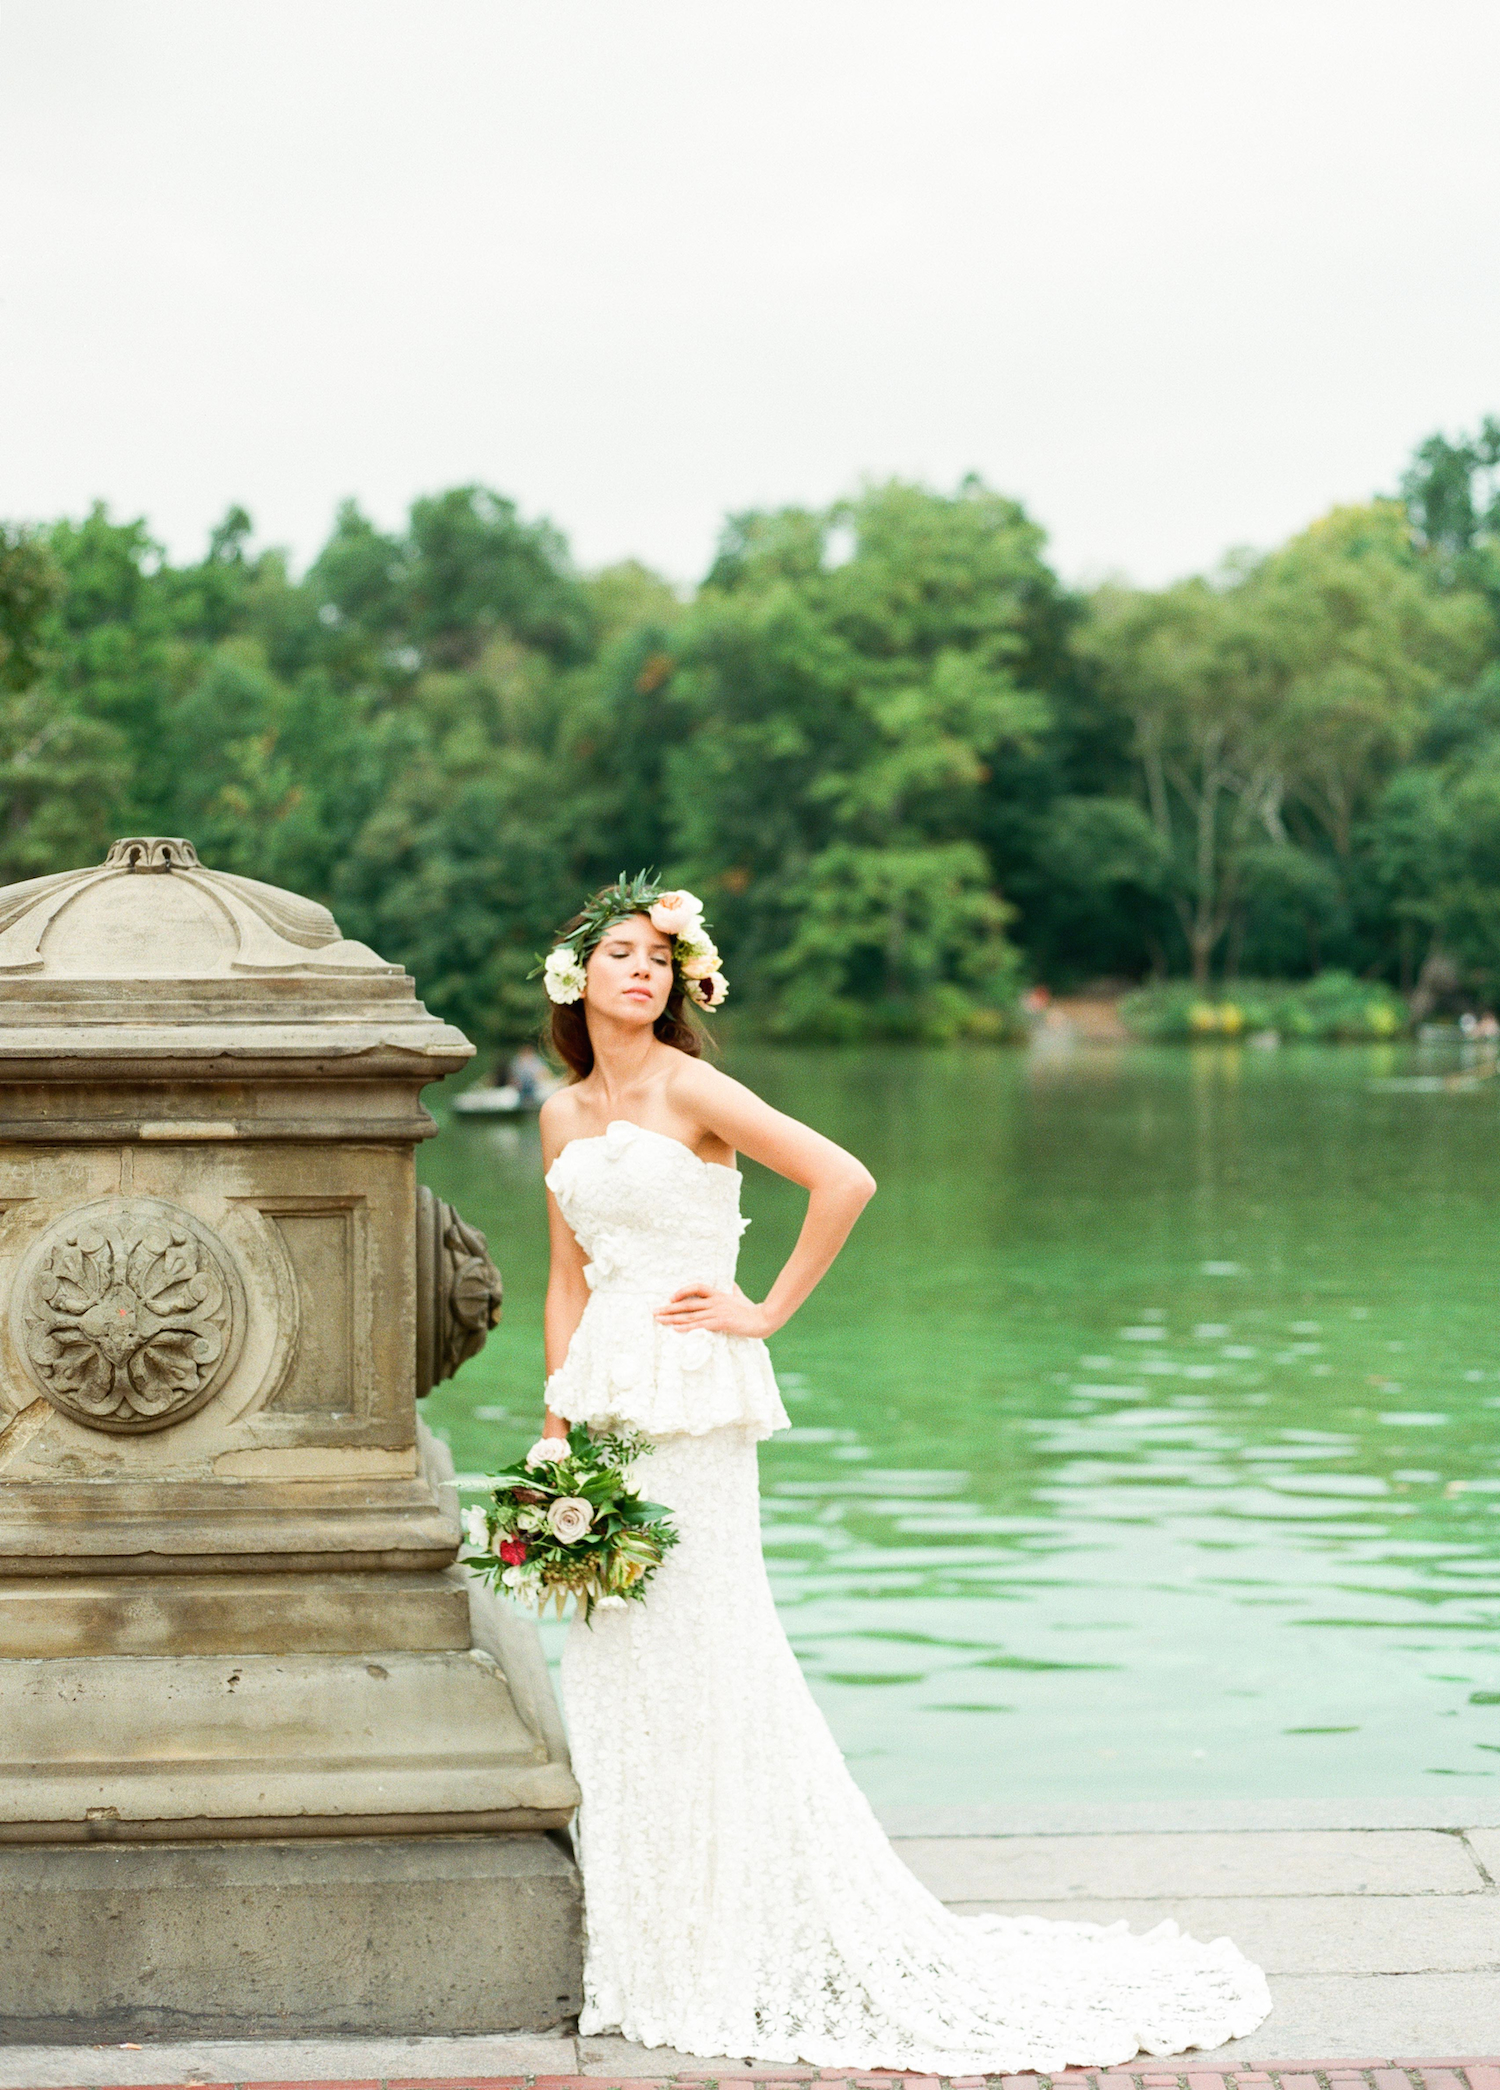 The Flower Bride- NYC Shoot- Lindsay Madden Photography-29 Full Aperture Floral copy.jpg